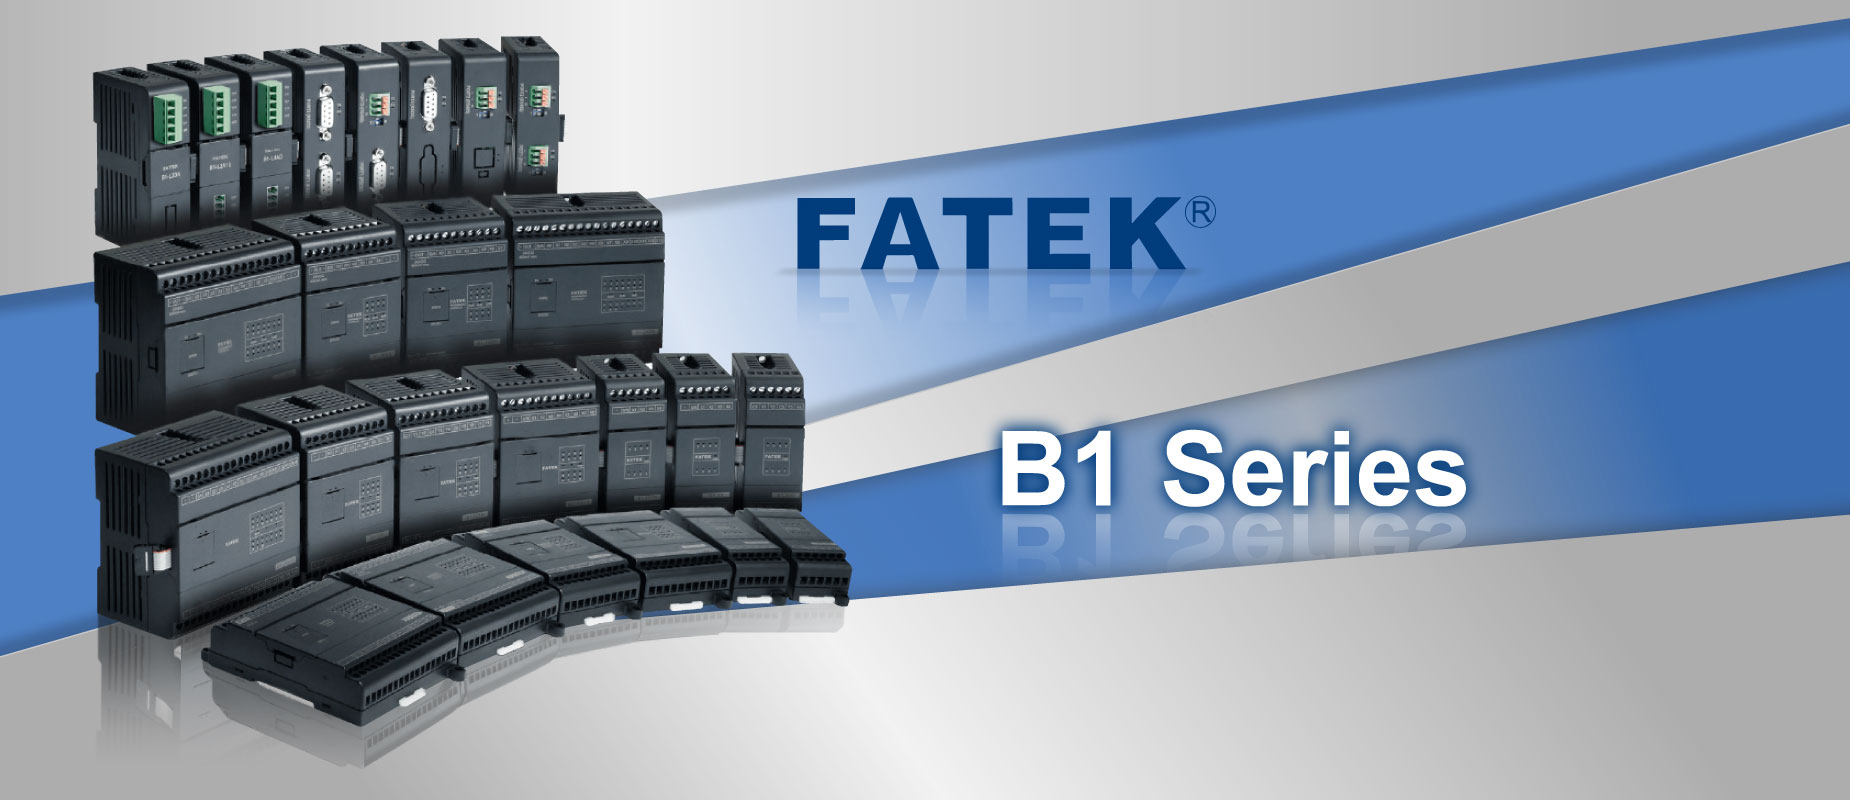 FATEK The brand you can rely on